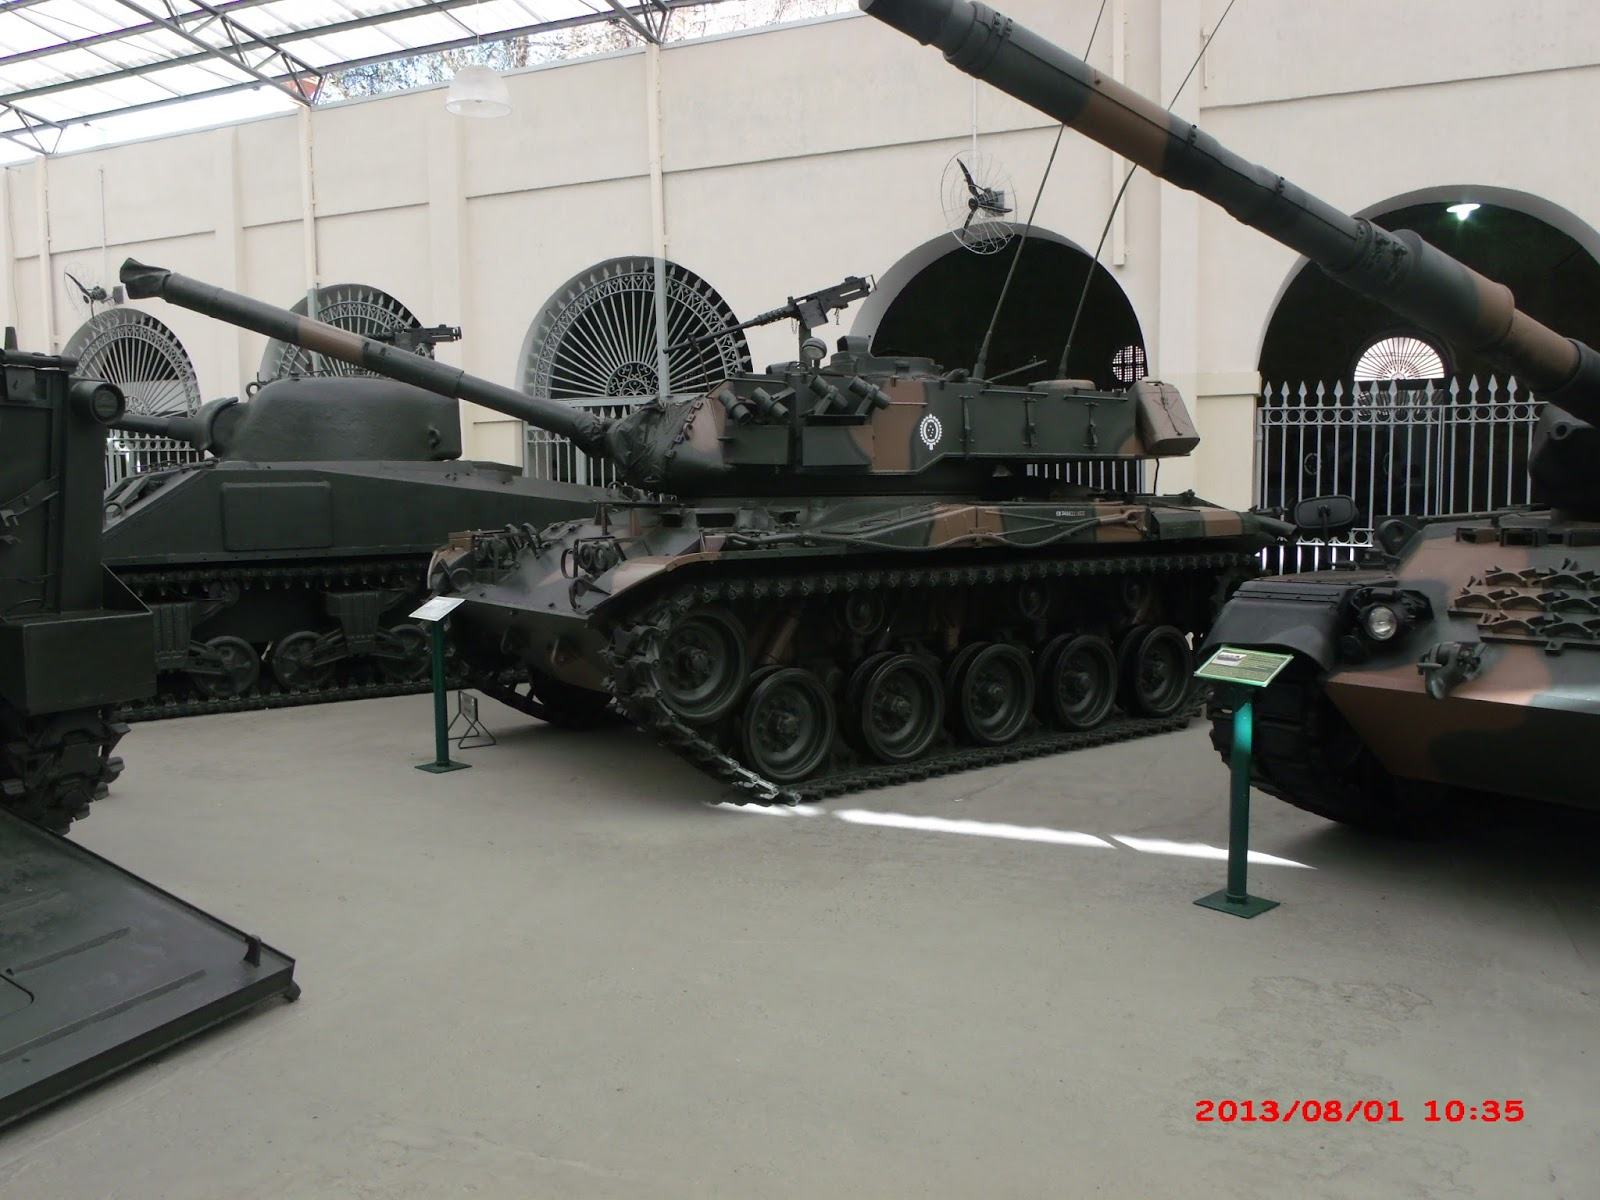 Car Lots In Kenner >> Vamos Ver no Pano Verde: Military Museum of Porto Alegre